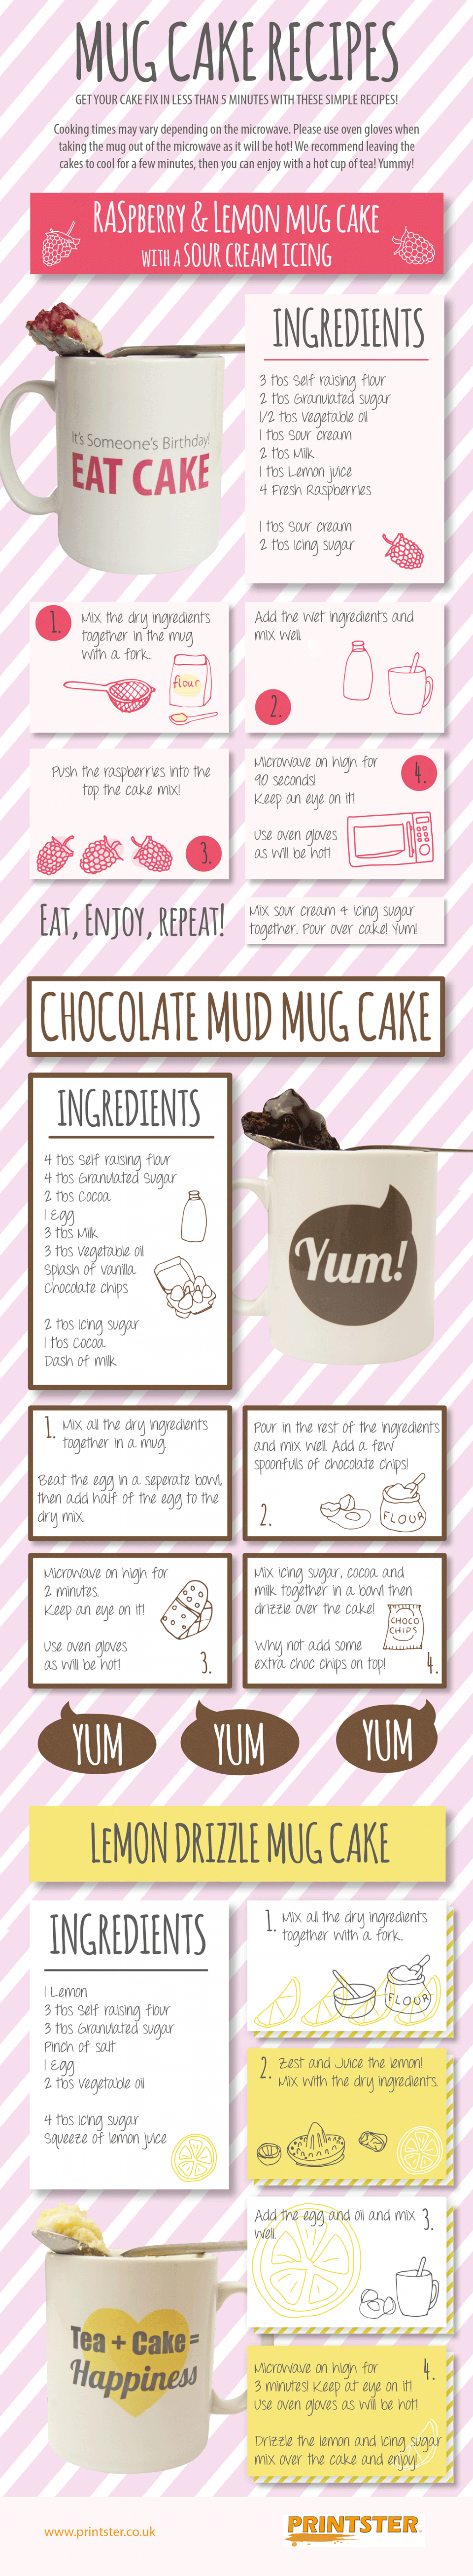 Mug Cake Recipes Infographic